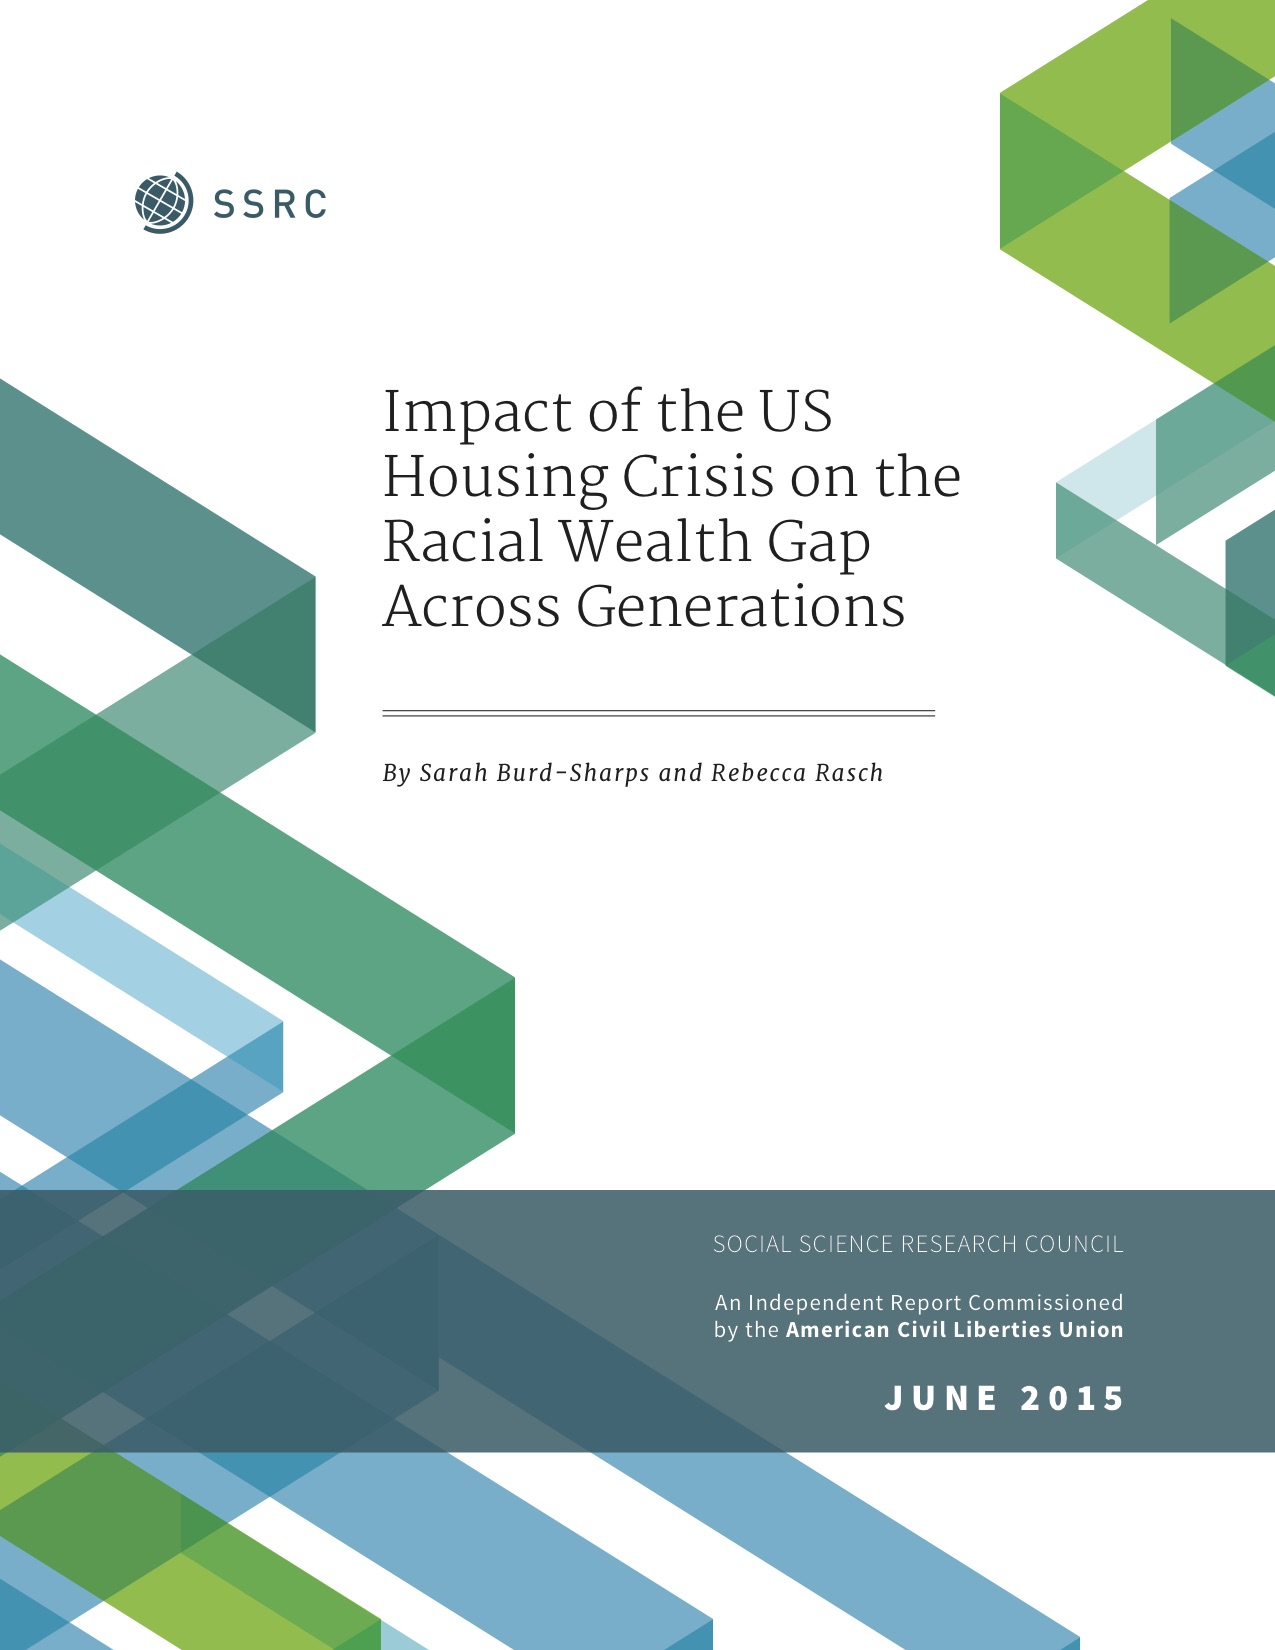 Impact of the US Housing Crisis on the Racial Wealth Gap Across Generations